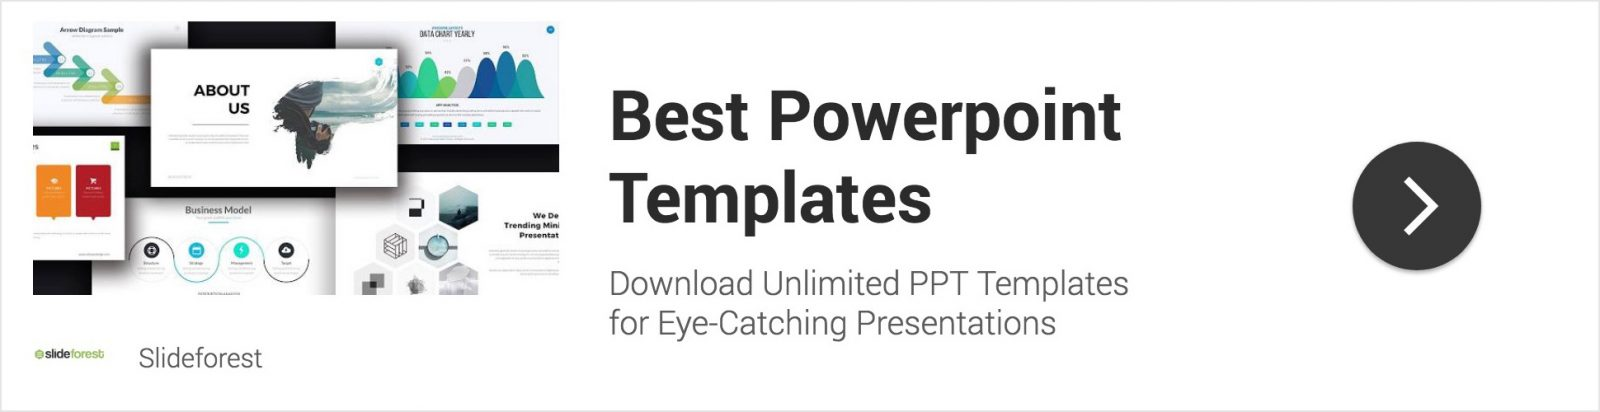 25 free business powerpoint templates for presentations business powerpoint templates accmission Choice Image